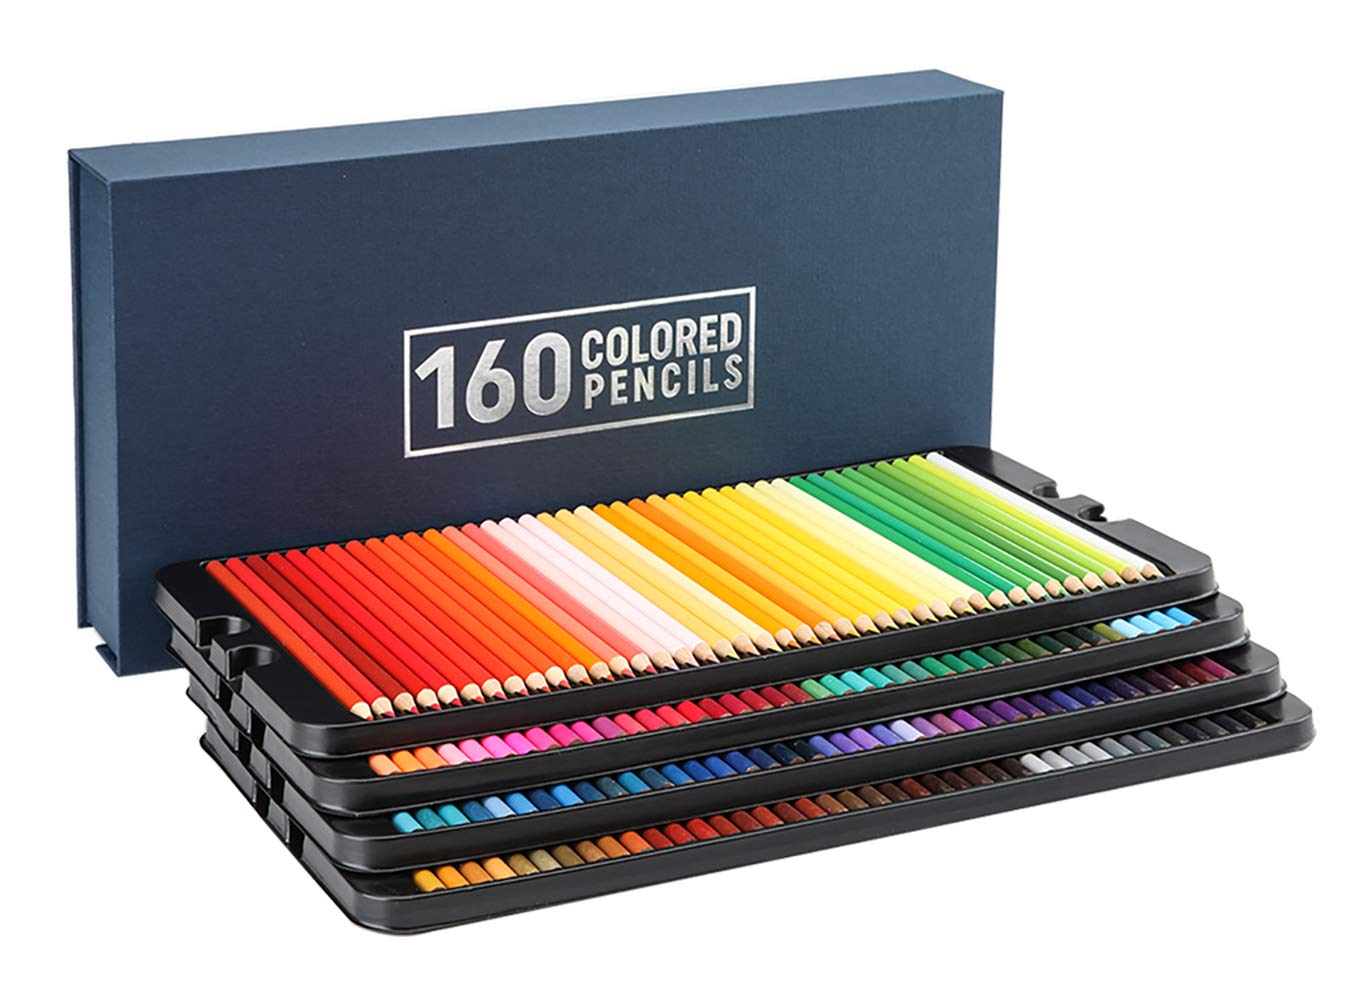 160 Colored Pencils Set - Coloring Pencils for Artists with Case, Ideal Colored Pencils for Adult Coloring Books, Doodling, Sketching by Cezan (Image #1)